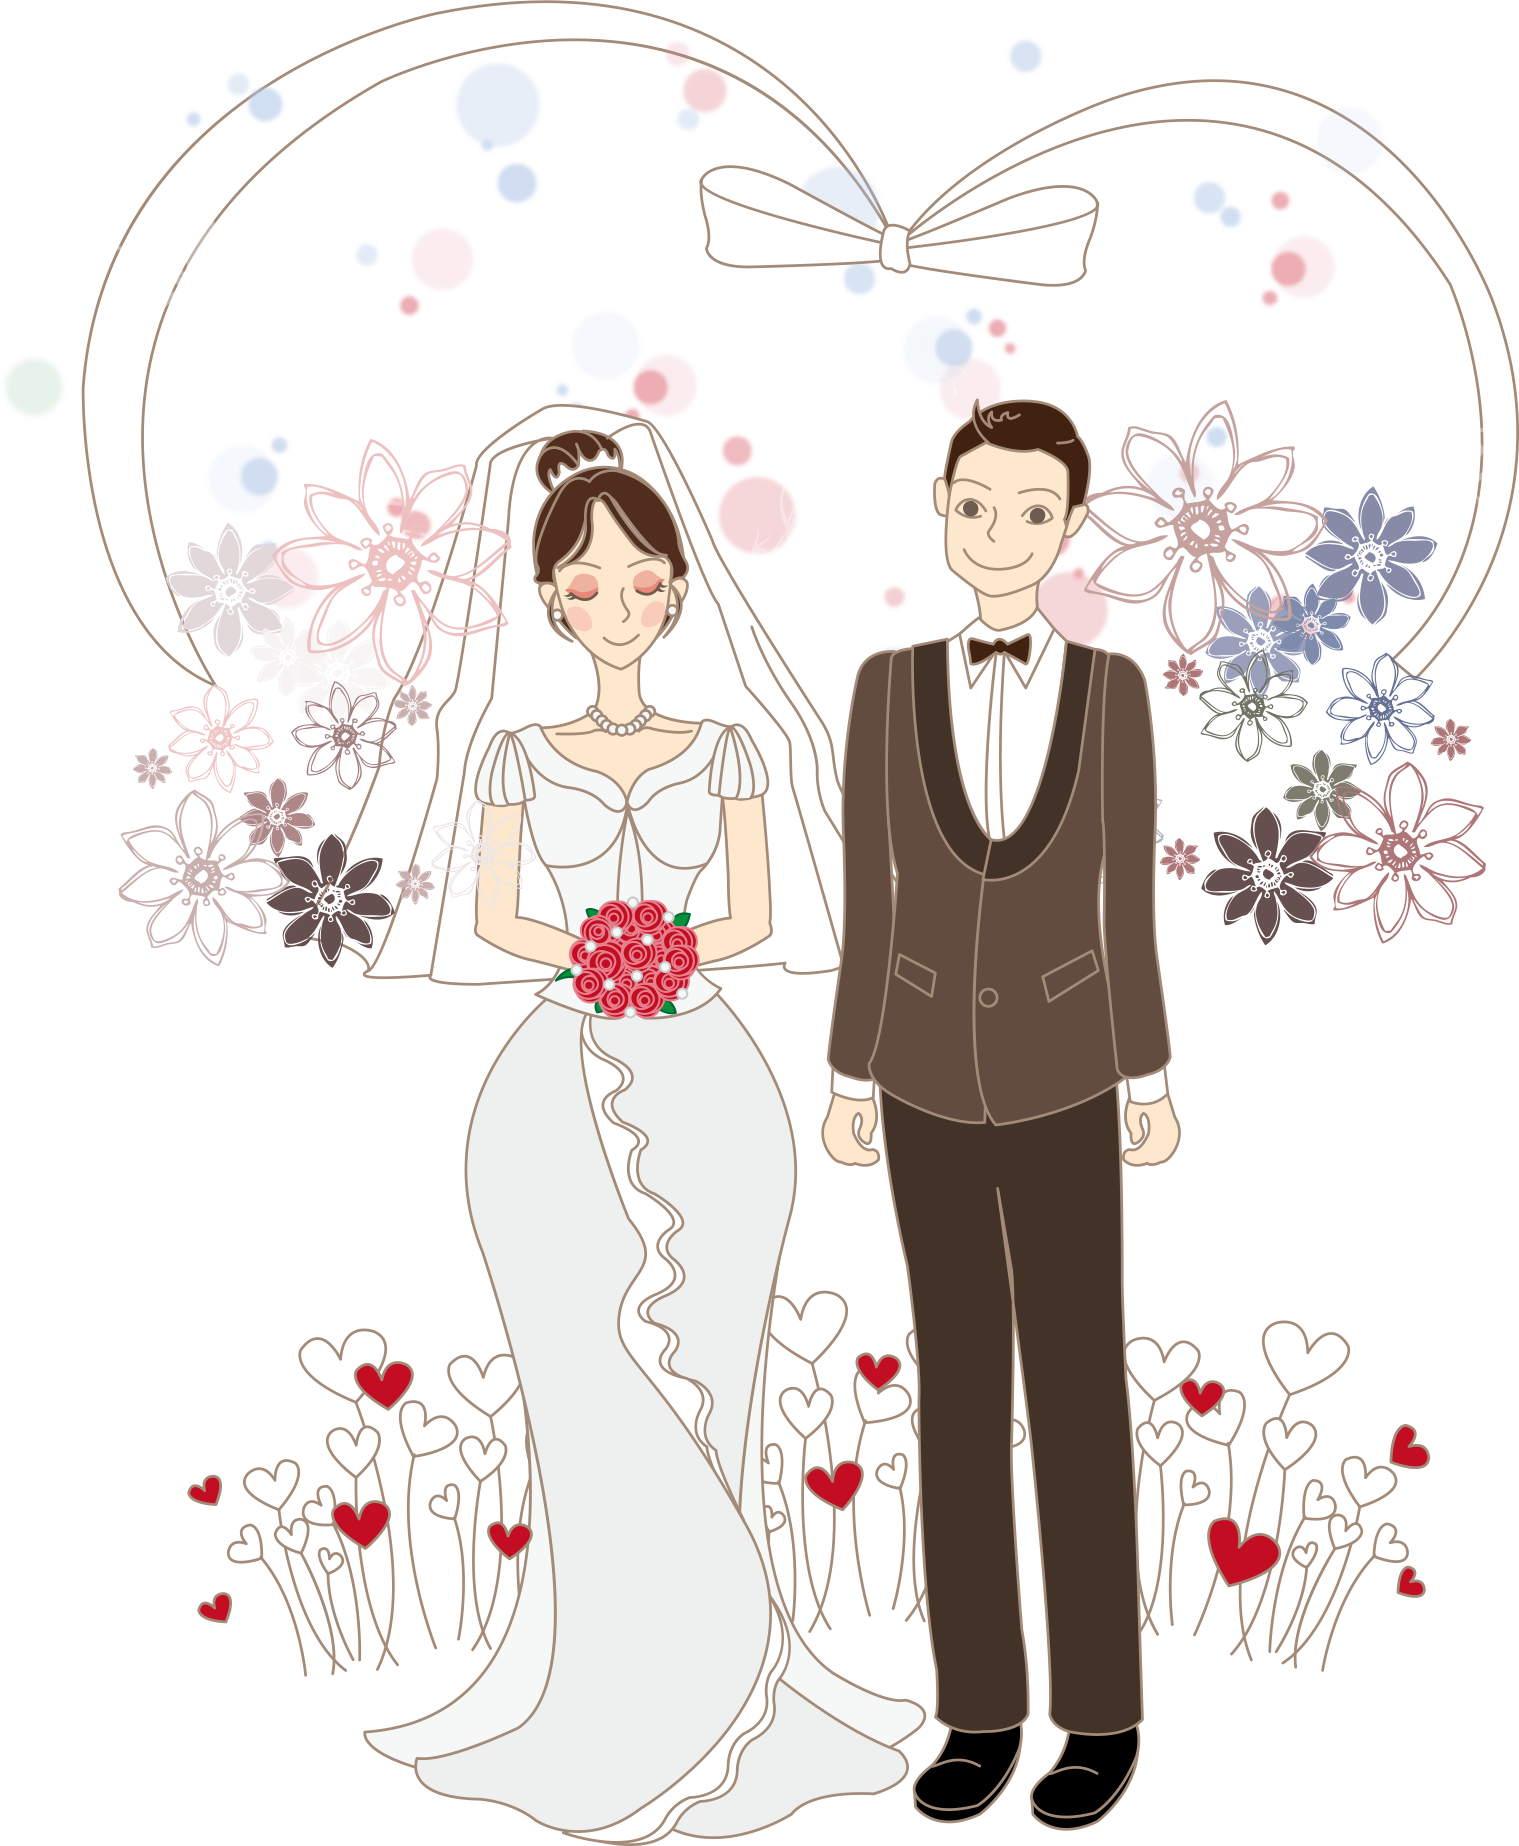 Gir drawing couple. Cartoon bride wedding illustration